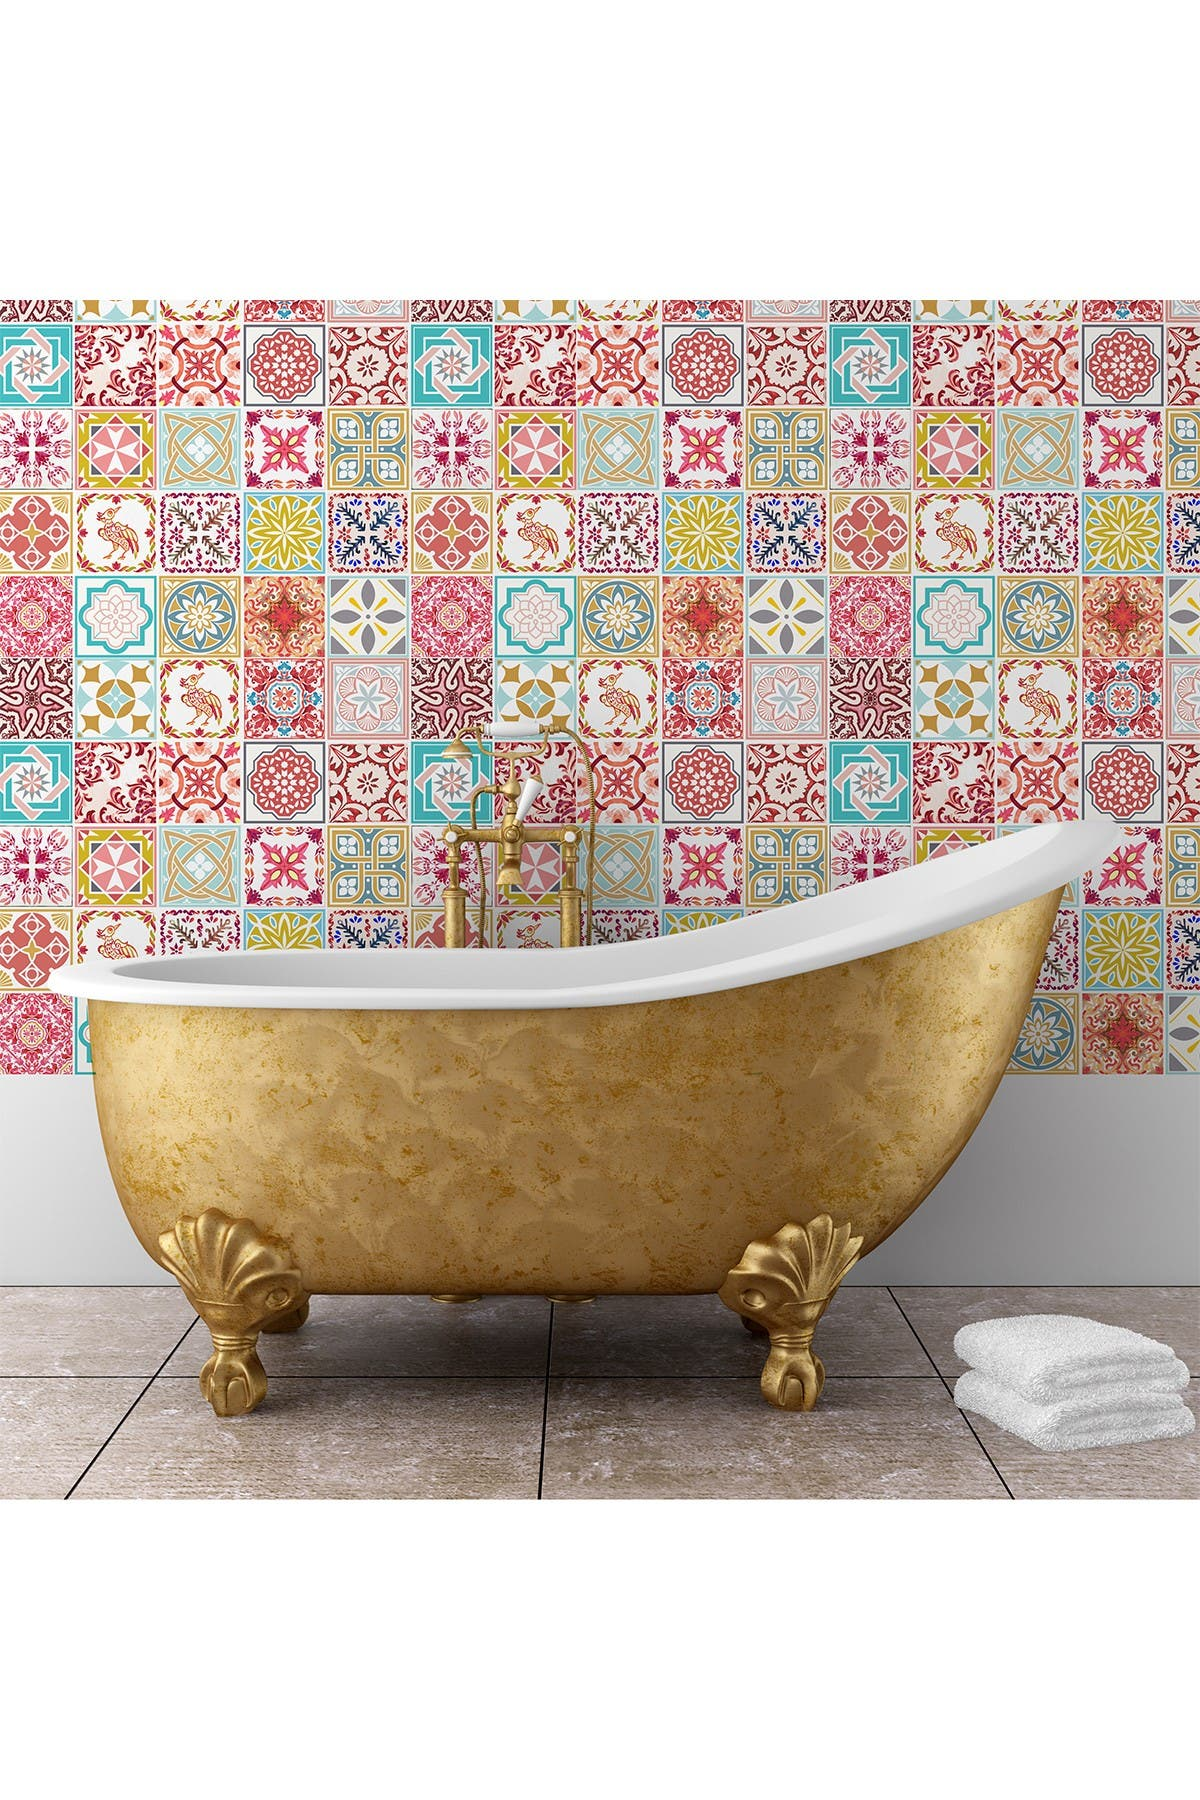 Image of WalPlus Pink & Blue Moroccan Wall Tile Sticker Set - 48 Pieces